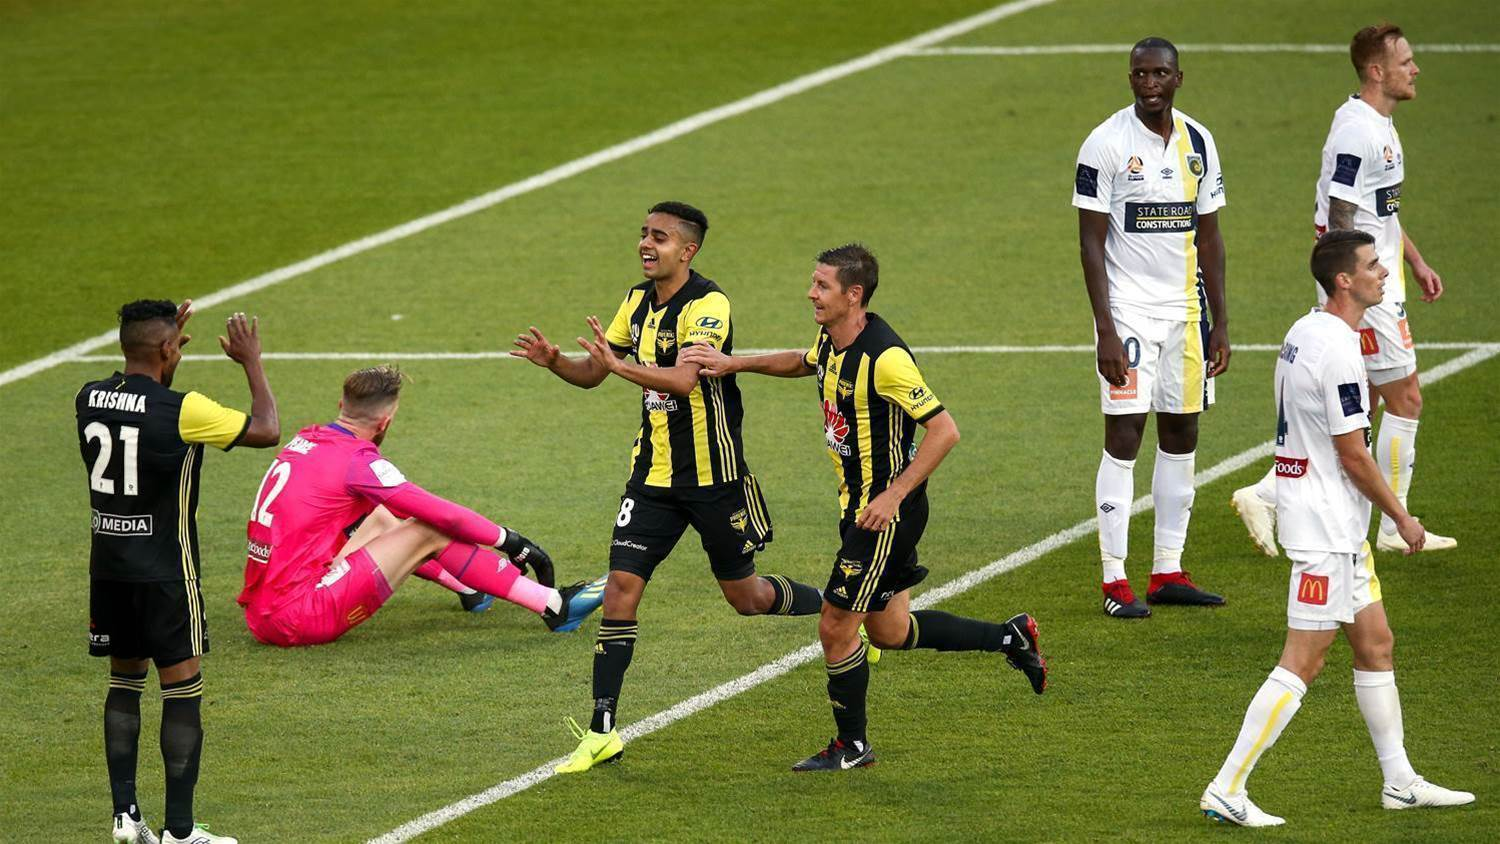 Wellington Phoenix v Central Coast Mariners player ratings